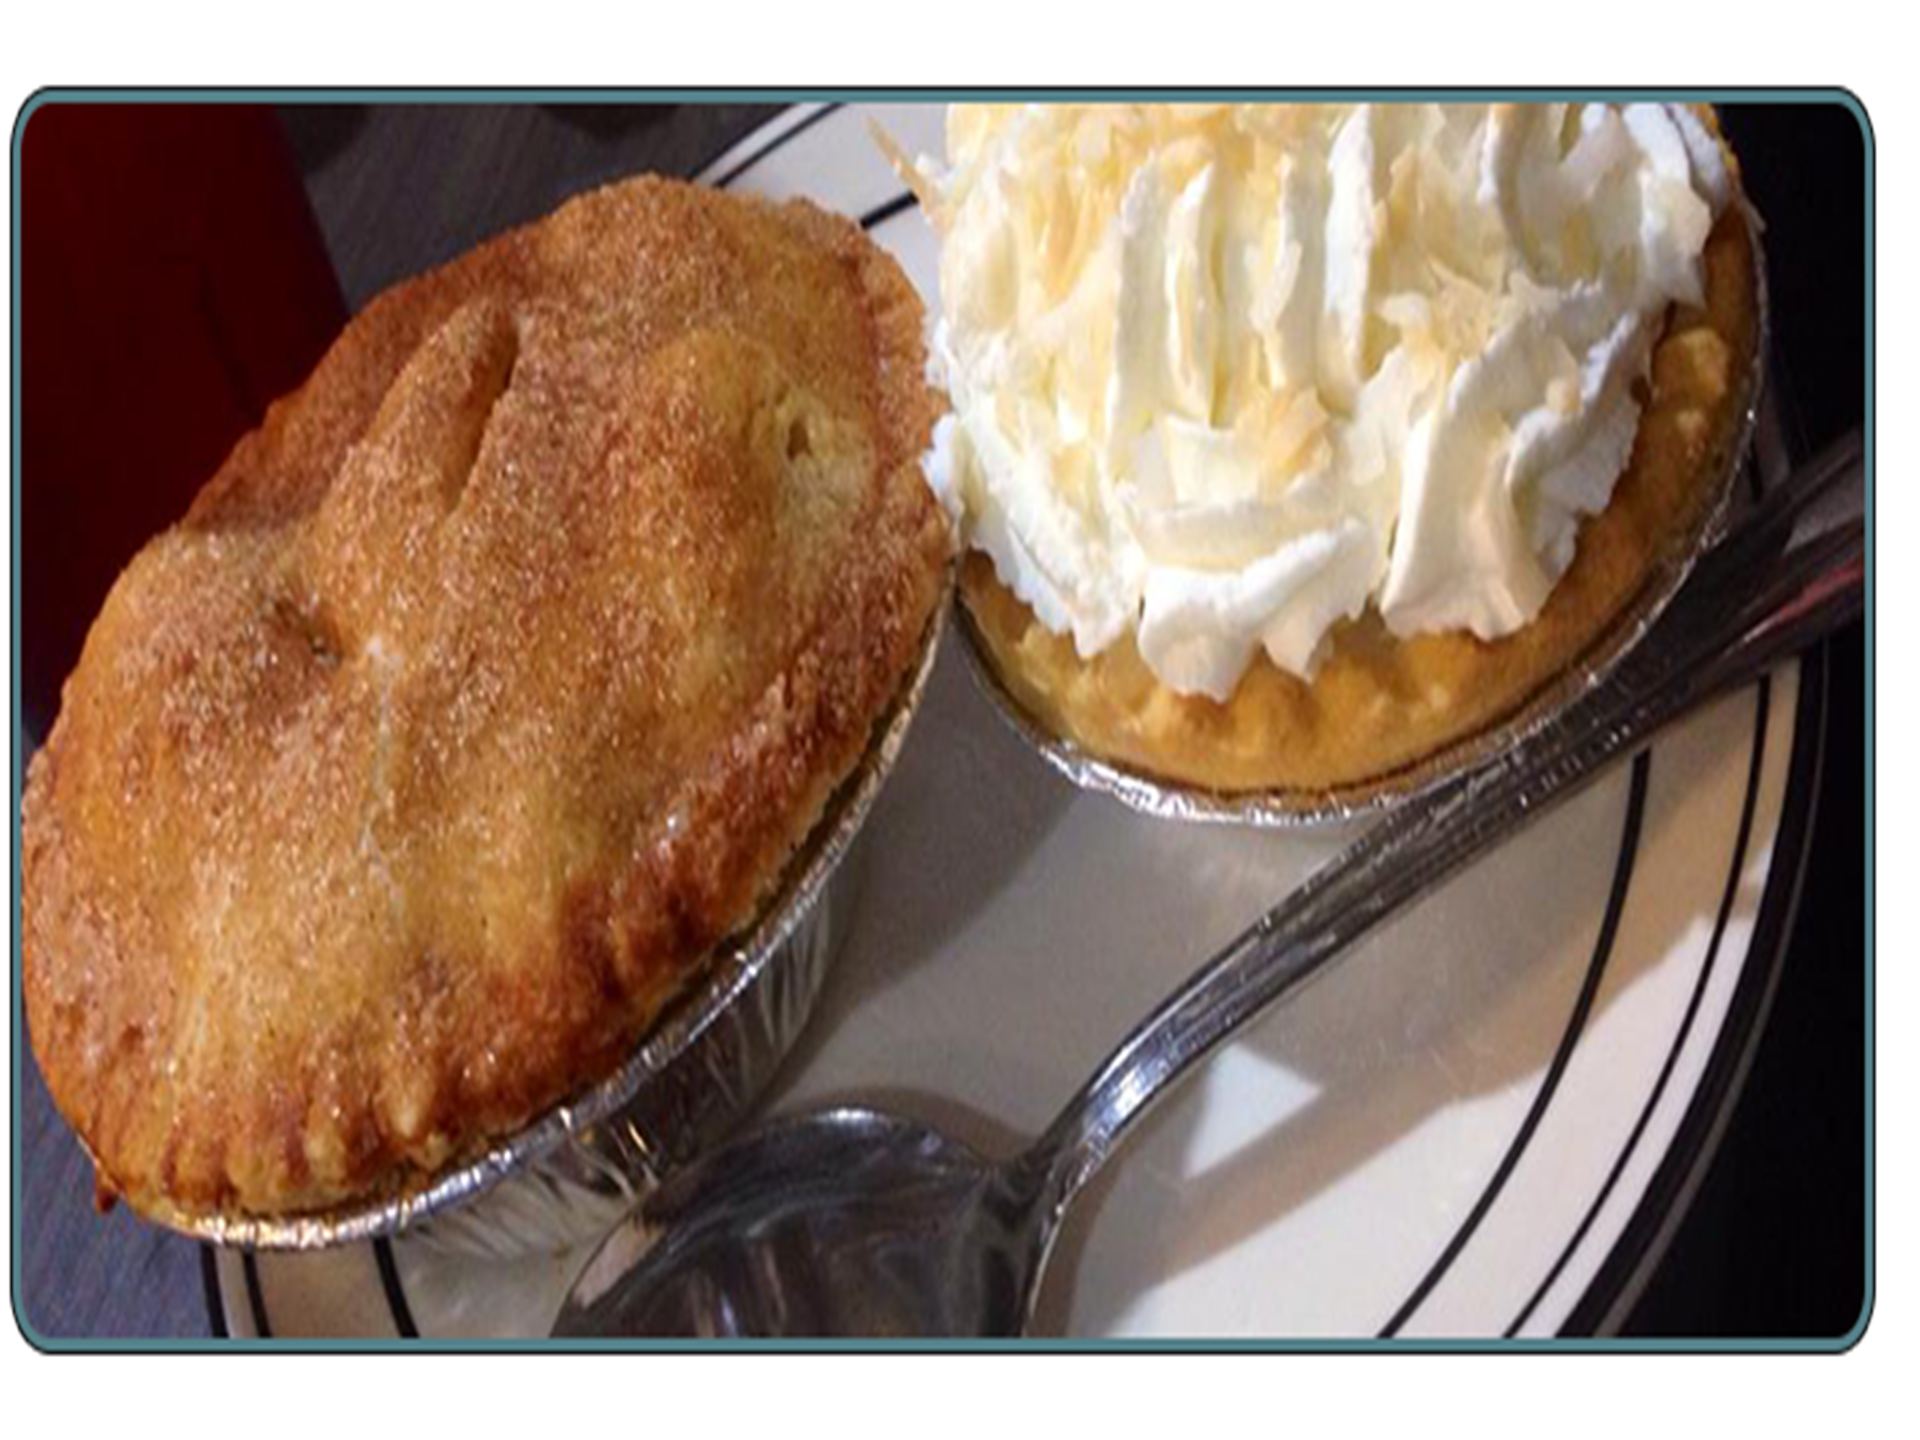 two small pies. one is topped with whipped cream